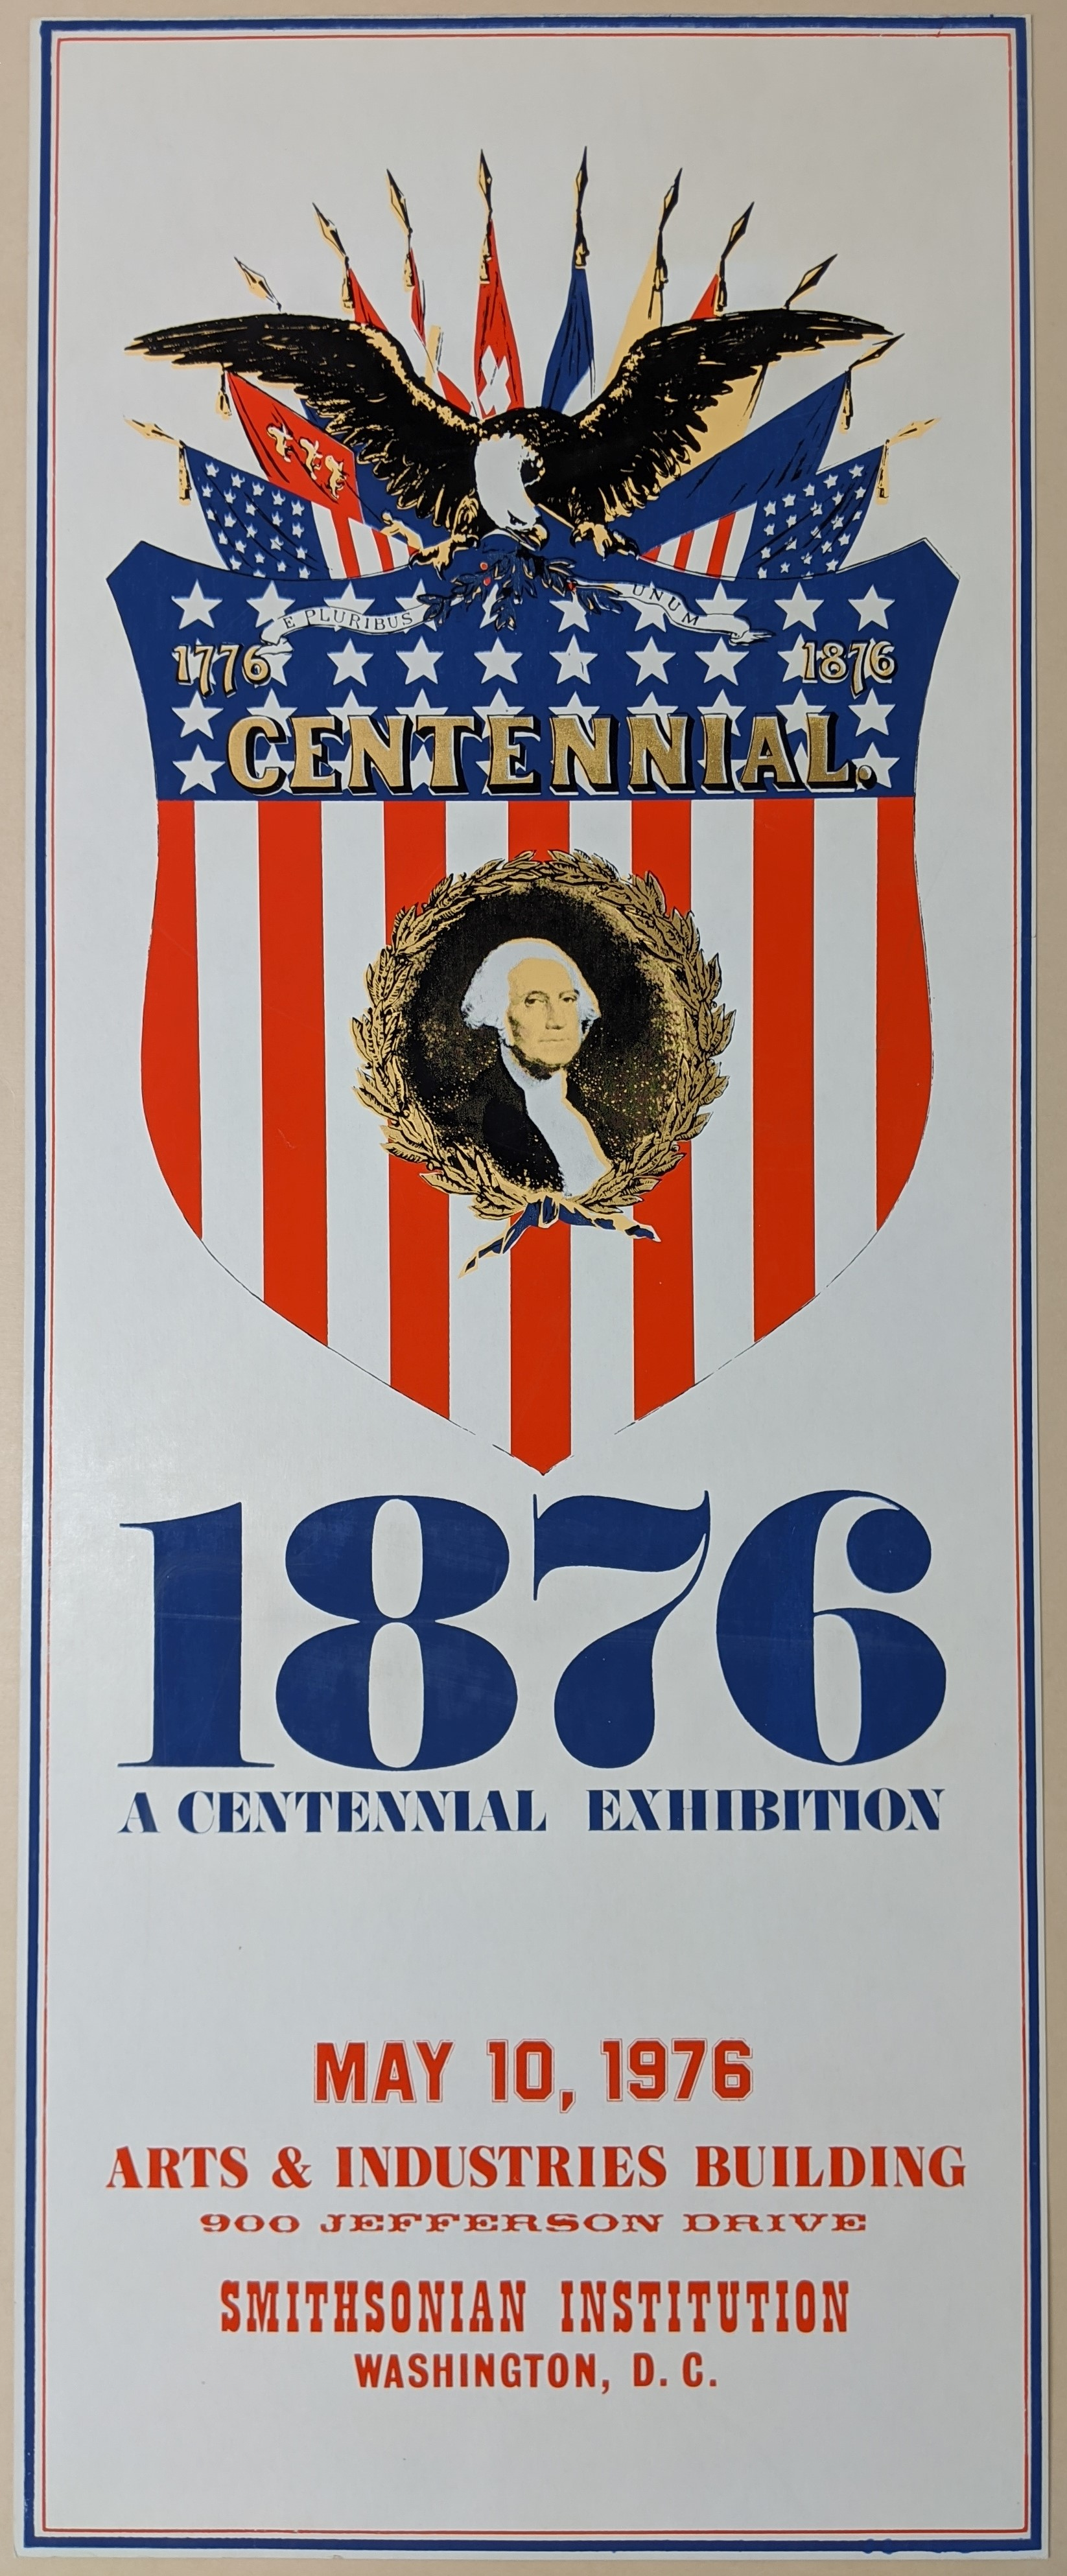 Poster with white background, portrait of George Washington on a United States flag shield, and a ba